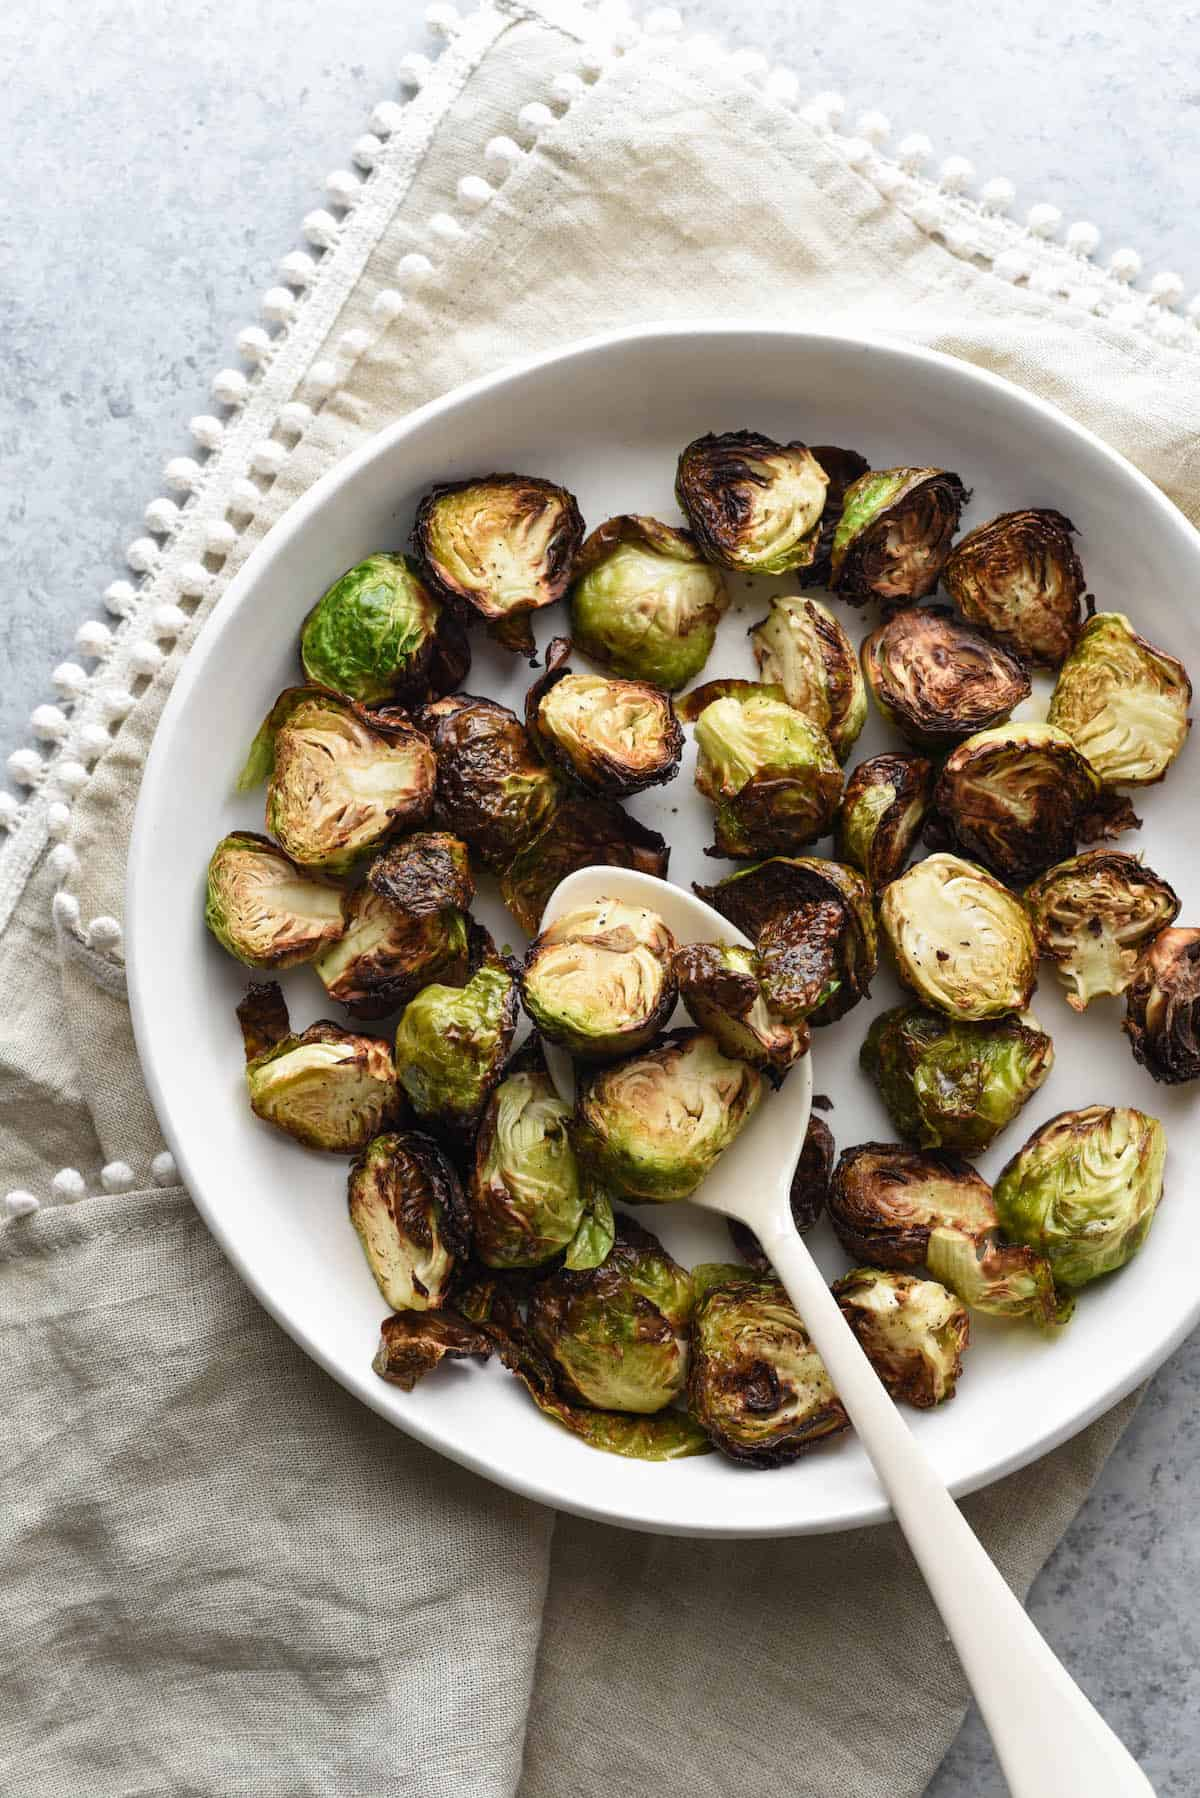 Air fried brussels sprouts in shallow white bowl with white serving spoon, on top of beige linen with pom pom edging.